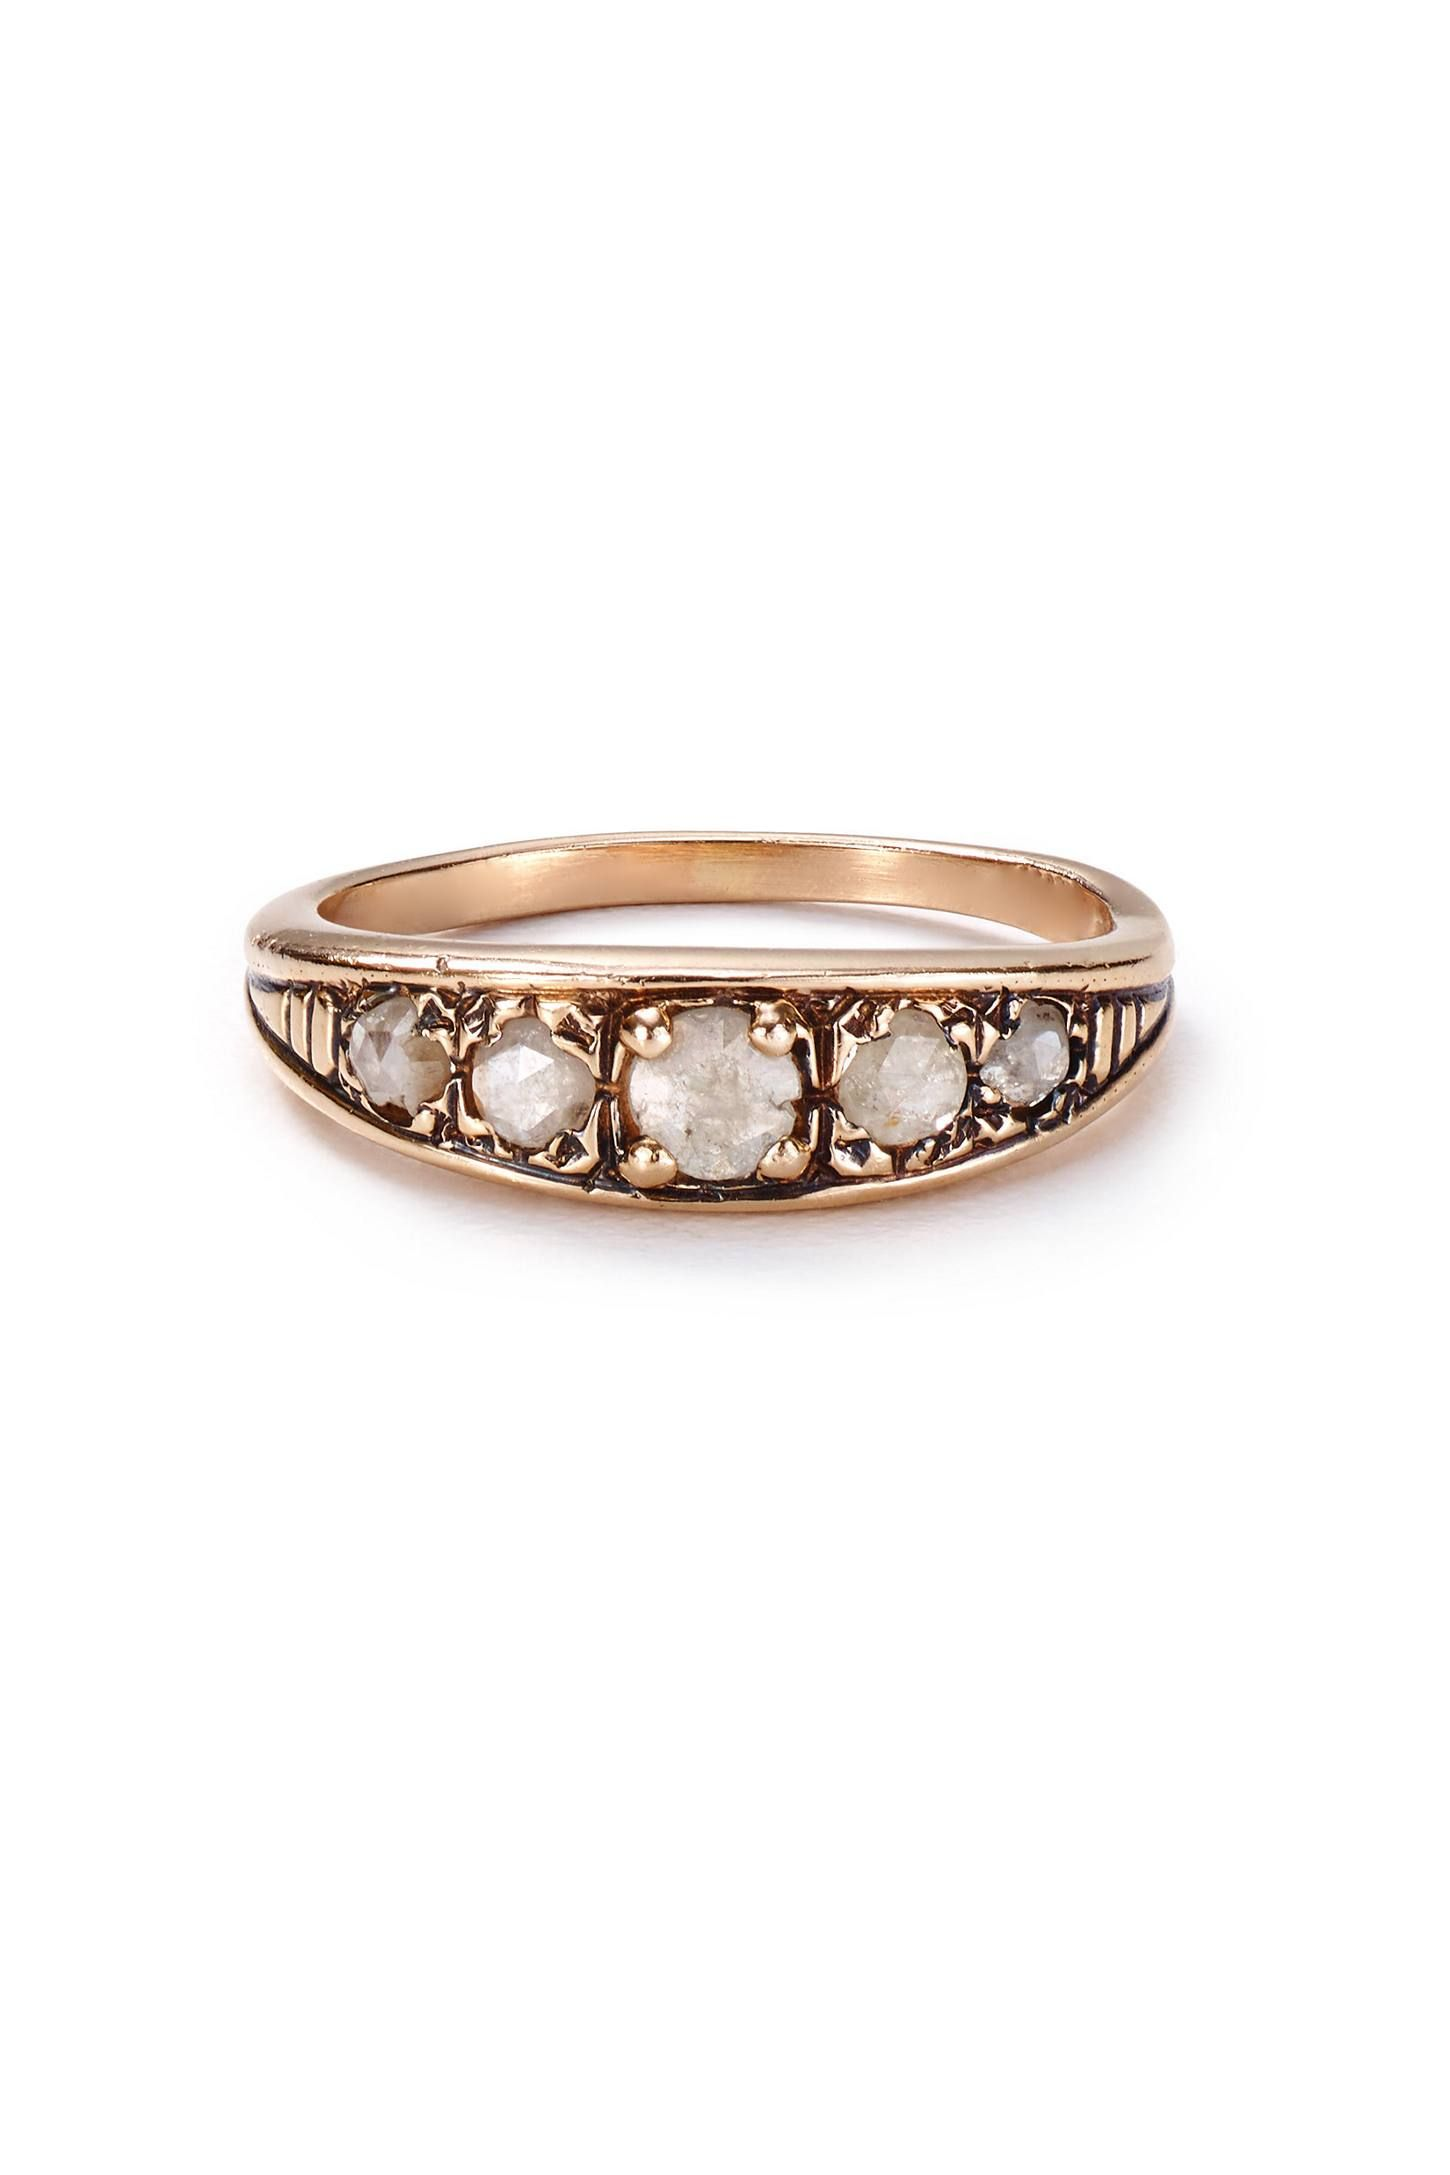 Rose gold and diamond band by arik kastan iud be quite happy with